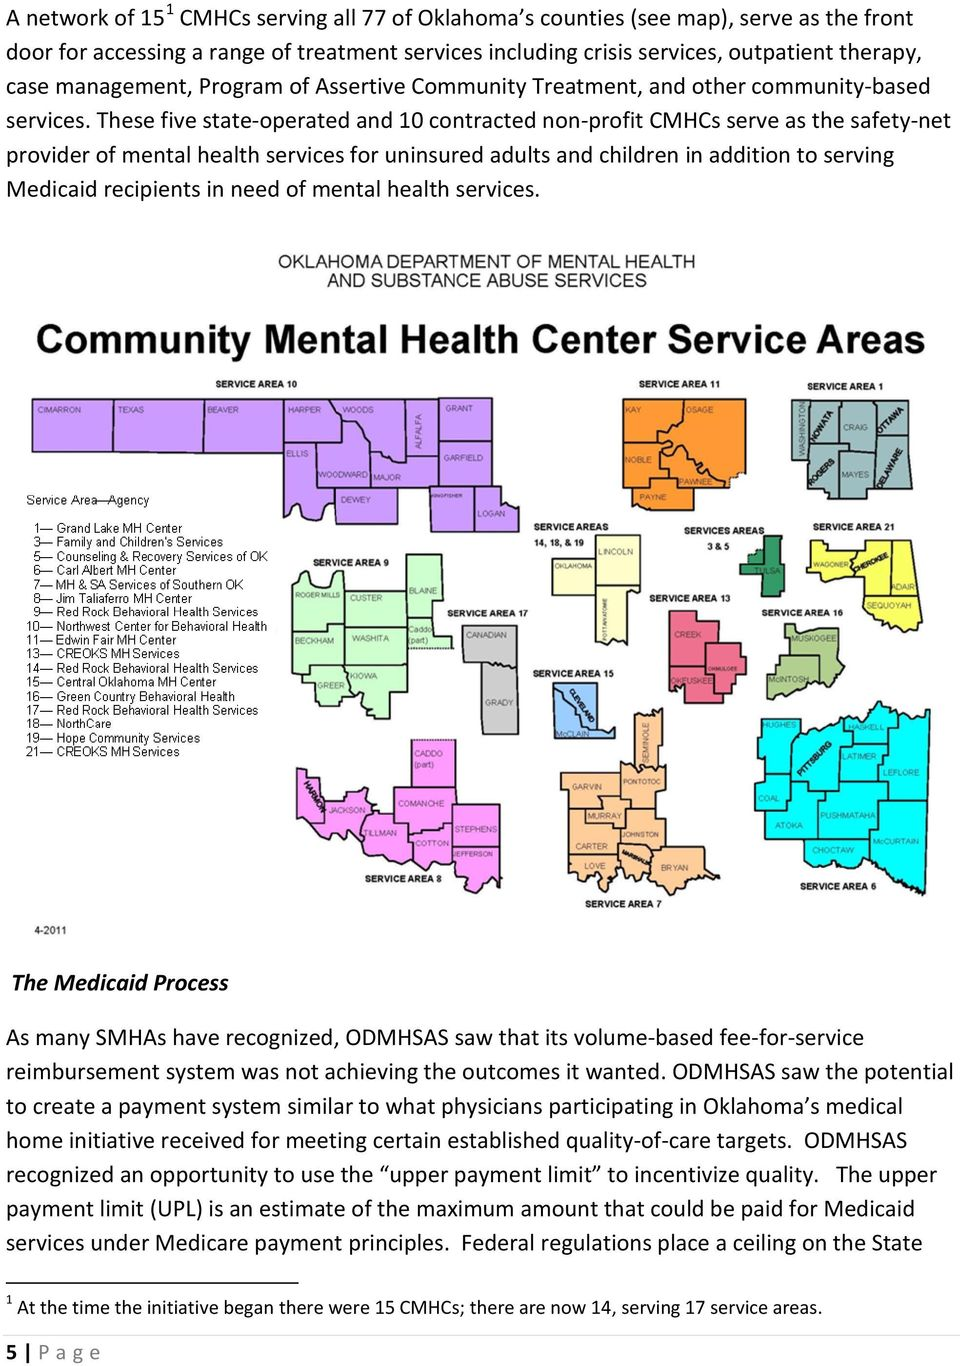 These five state-operated and 10 contracted non-profit CMHCs serve as the safety-net provider of mental health services for uninsured adults and children in addition to serving Medicaid recipients in